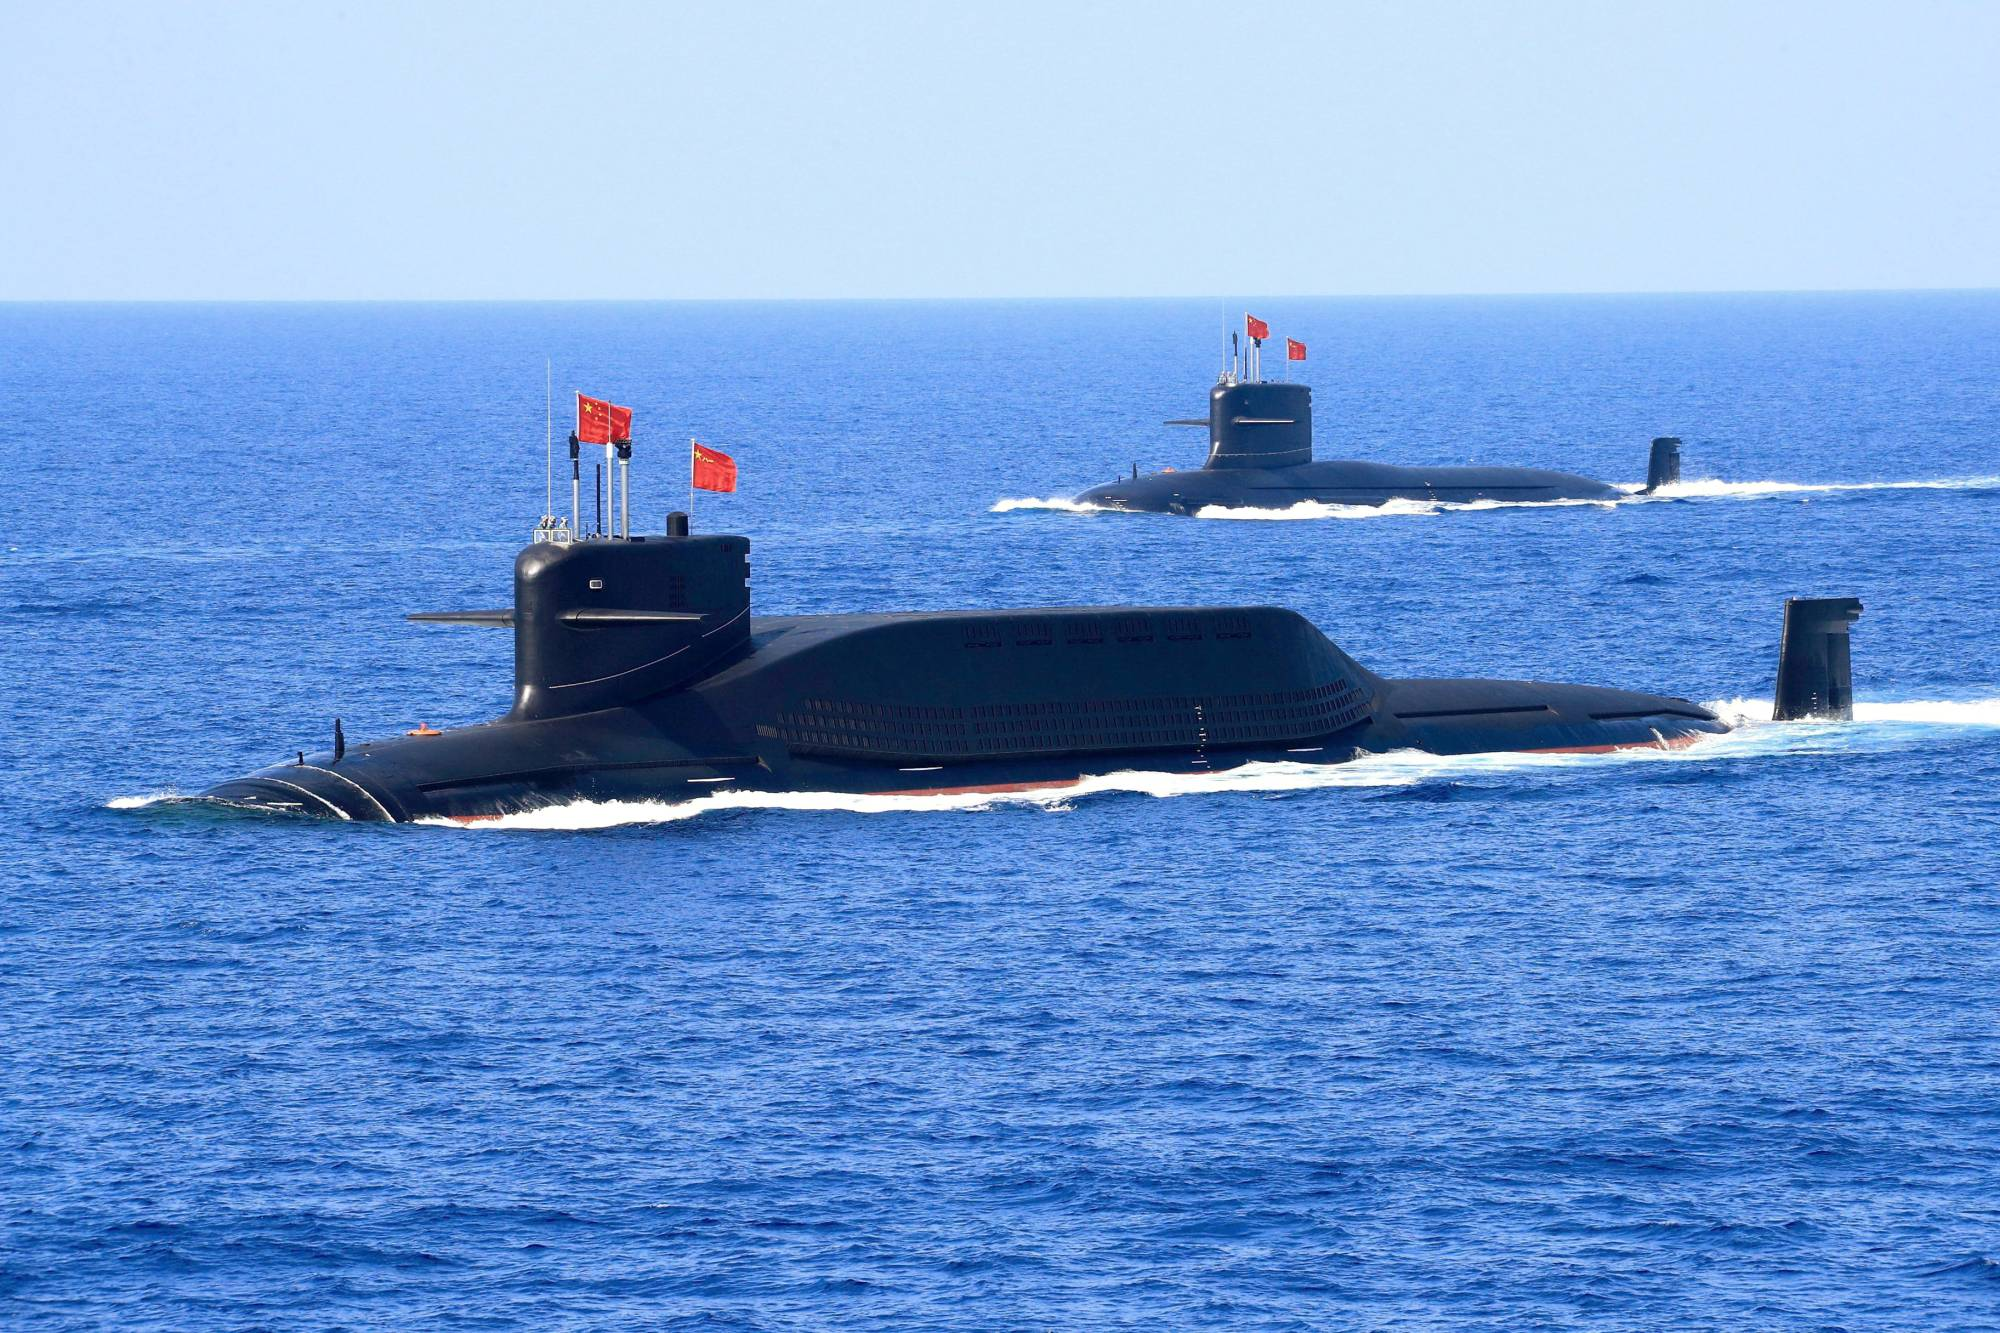 A nuclear-powered Type 094A Jin-class ballistic missile submarine of the Chinese People's Liberation Army Navy in the South China Sea in April 2018   REUTERS